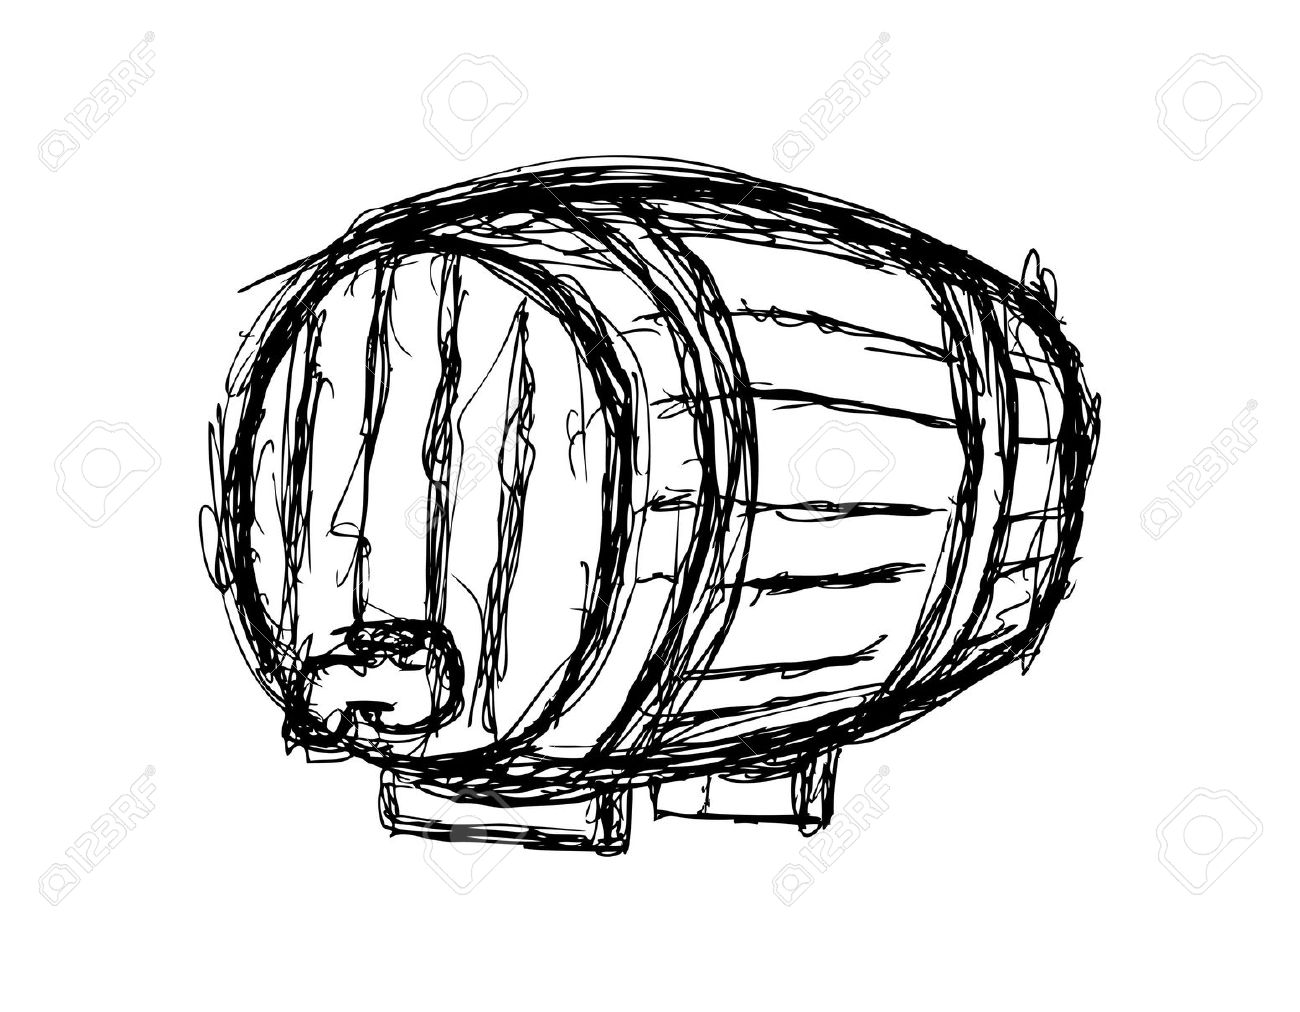 Wine Barrel Isolated On White Background Royalty Free Cliparts.